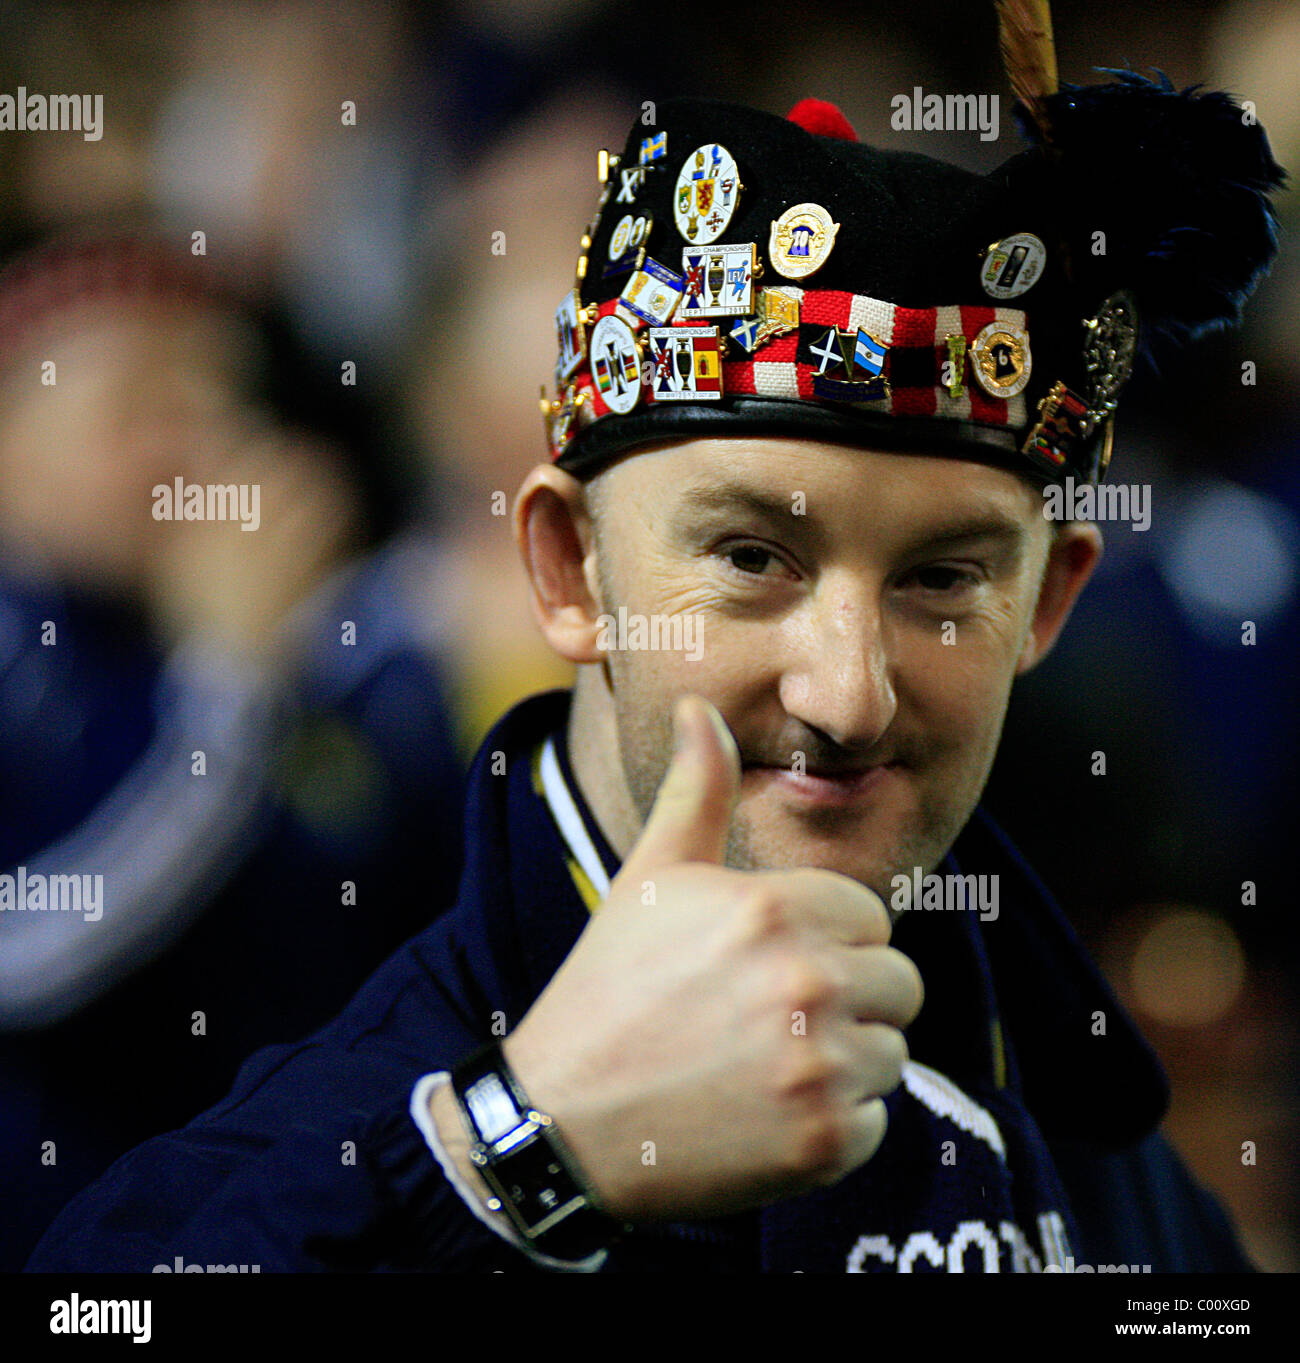 9th Feb 2011. Scottish Fans at the Carling Nations Cup 2011, Scotland Vs N. Ireland at the Aviva Stadium, Dublin. - Stock Image